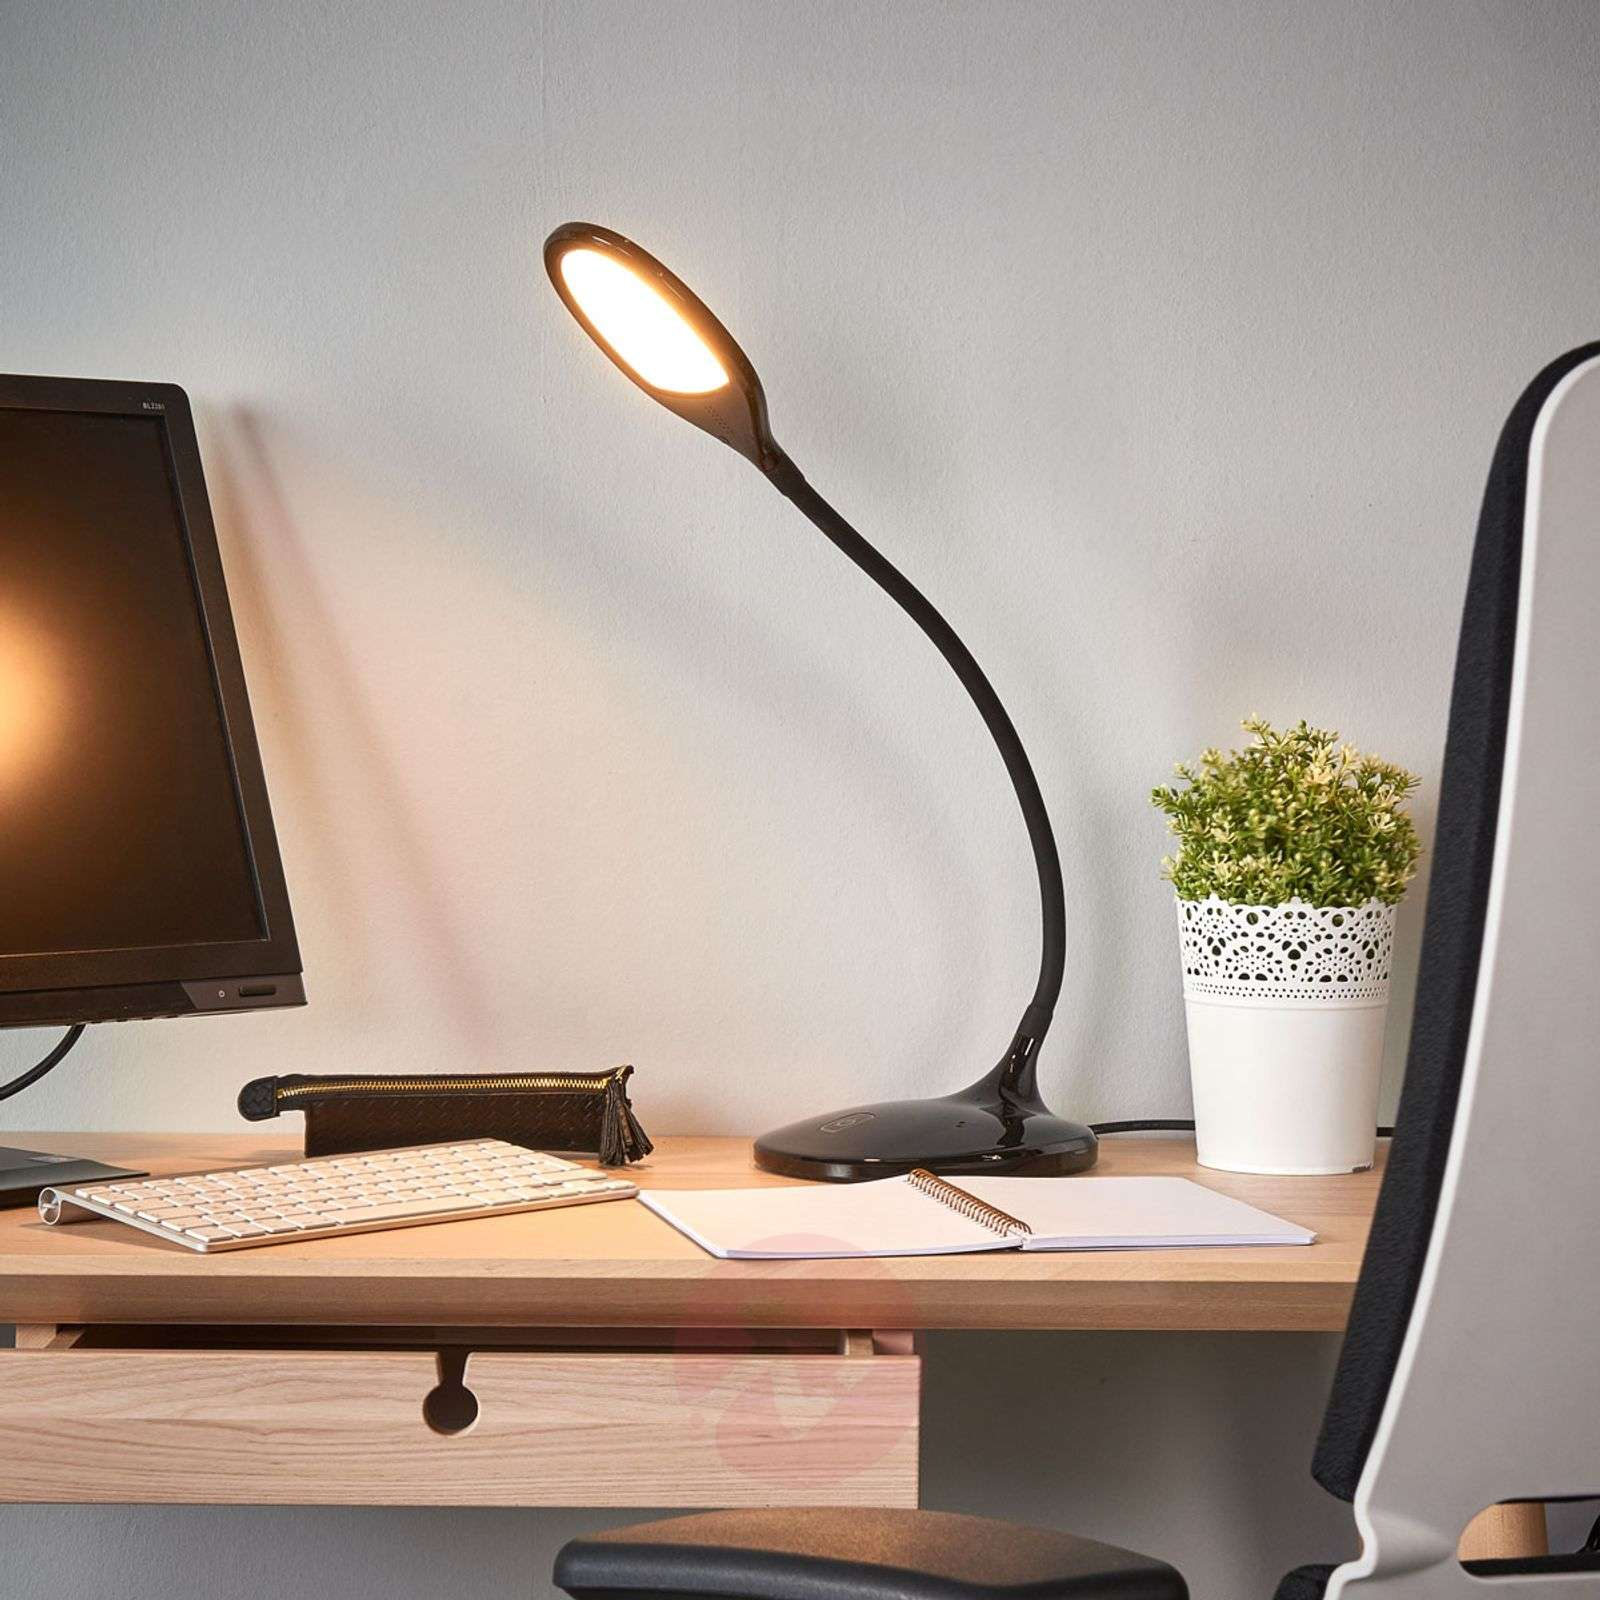 Aijana LED desk lamp with dimmer-9643044-02